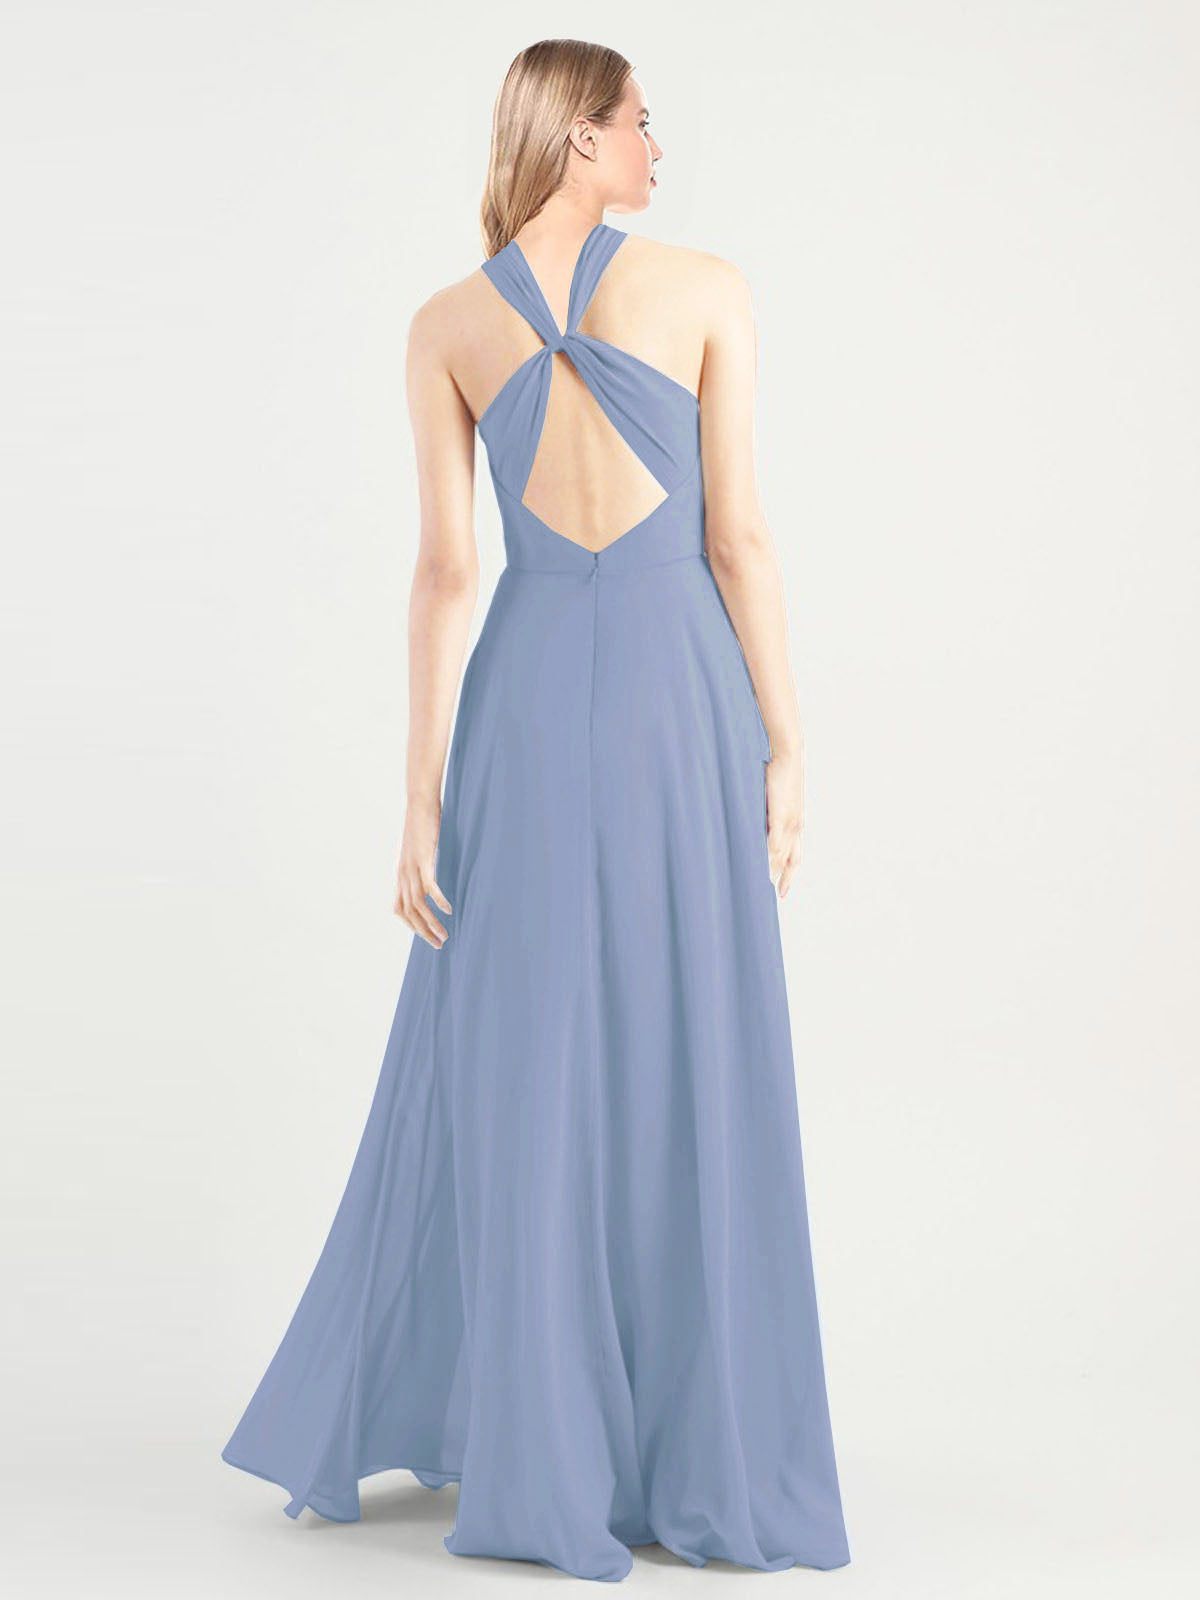 Long A-Line High Neck, Halter Sleeveless Dusty Blue Chiffon Bridesmaid Dress Yoli